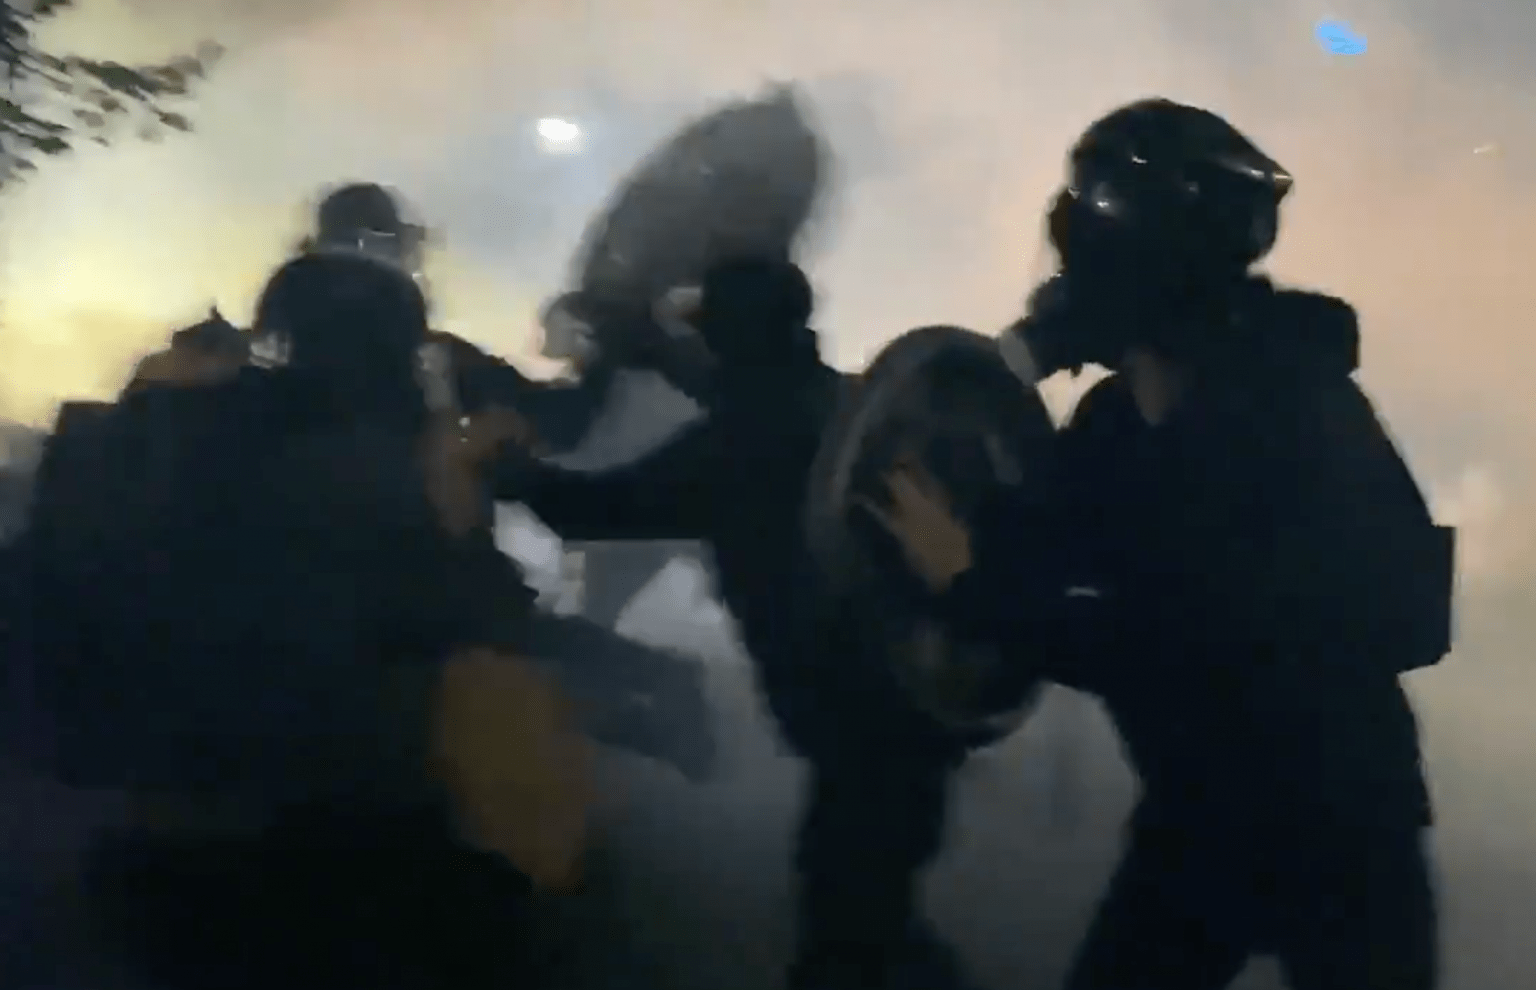 Riots in Portland: Media continues to paint rioters like choir boys being attacked by police (here's the truth)